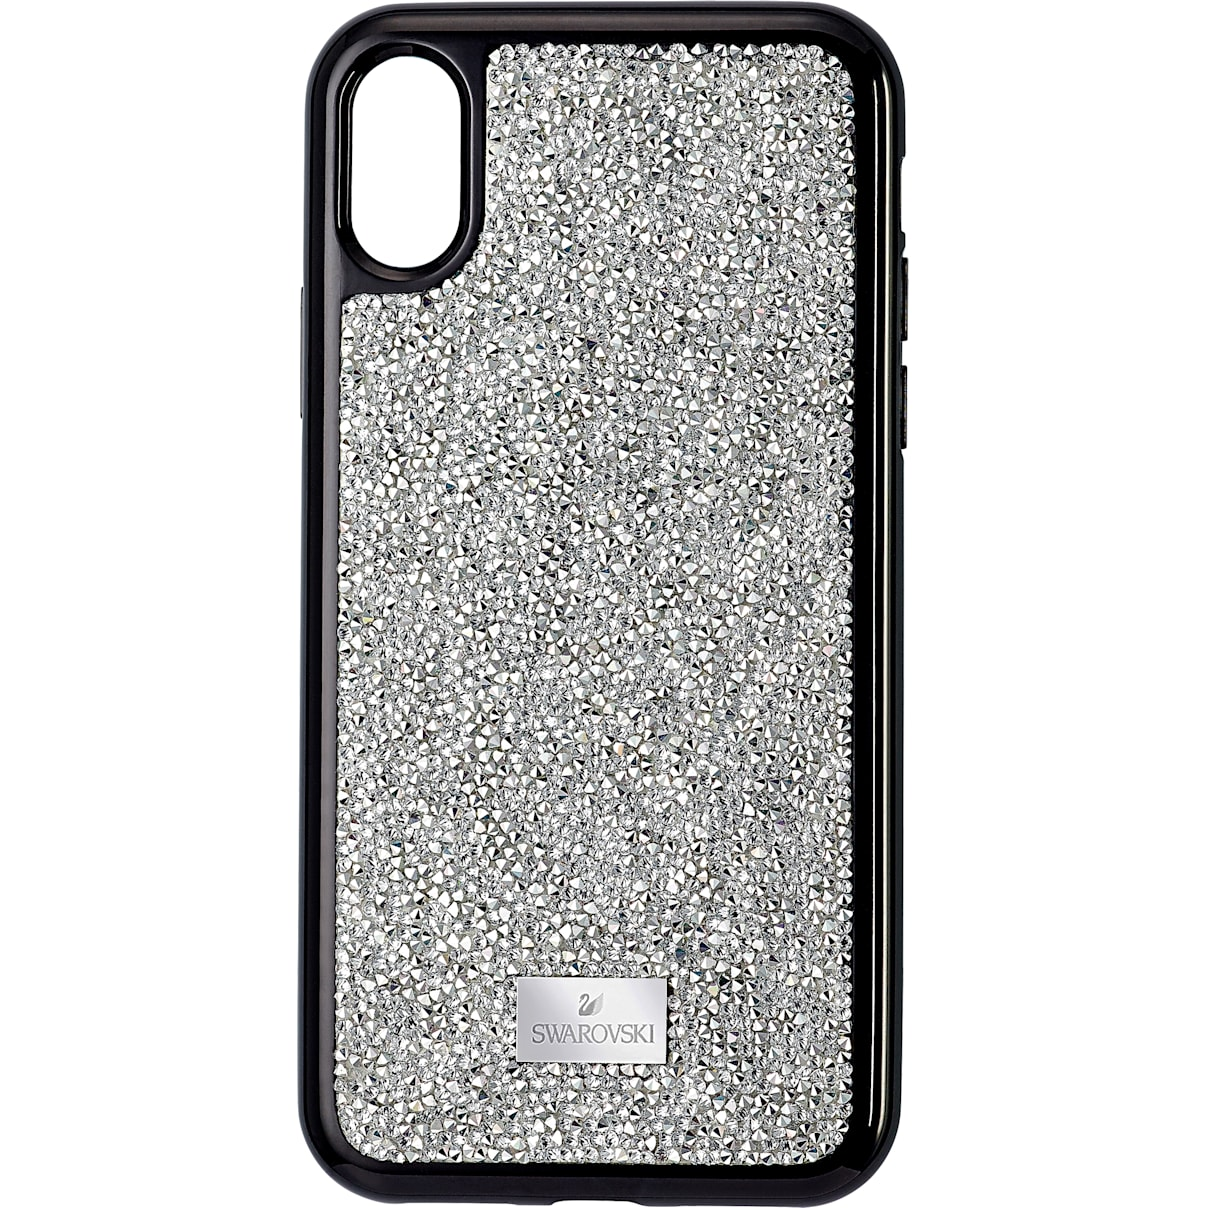 Swarovski Glam Rock Smartphone Case, iPhone® XR